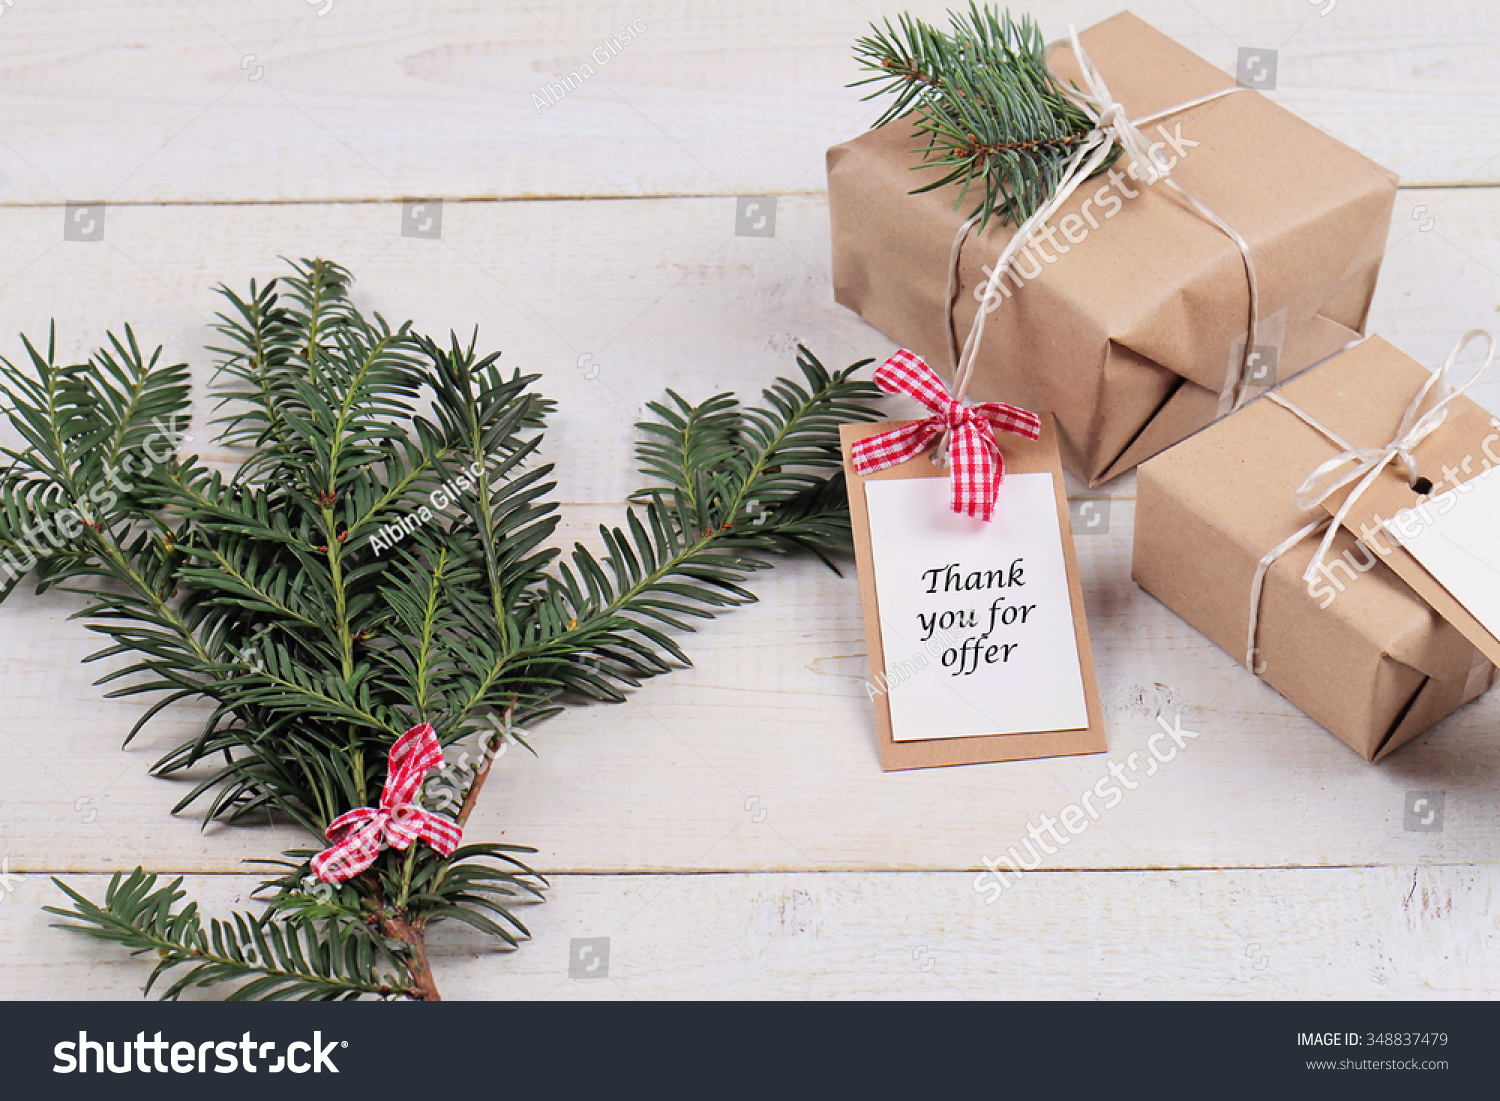 Business Marketing Ideas Christmas Client Gifts Stock Photo (Edit ...